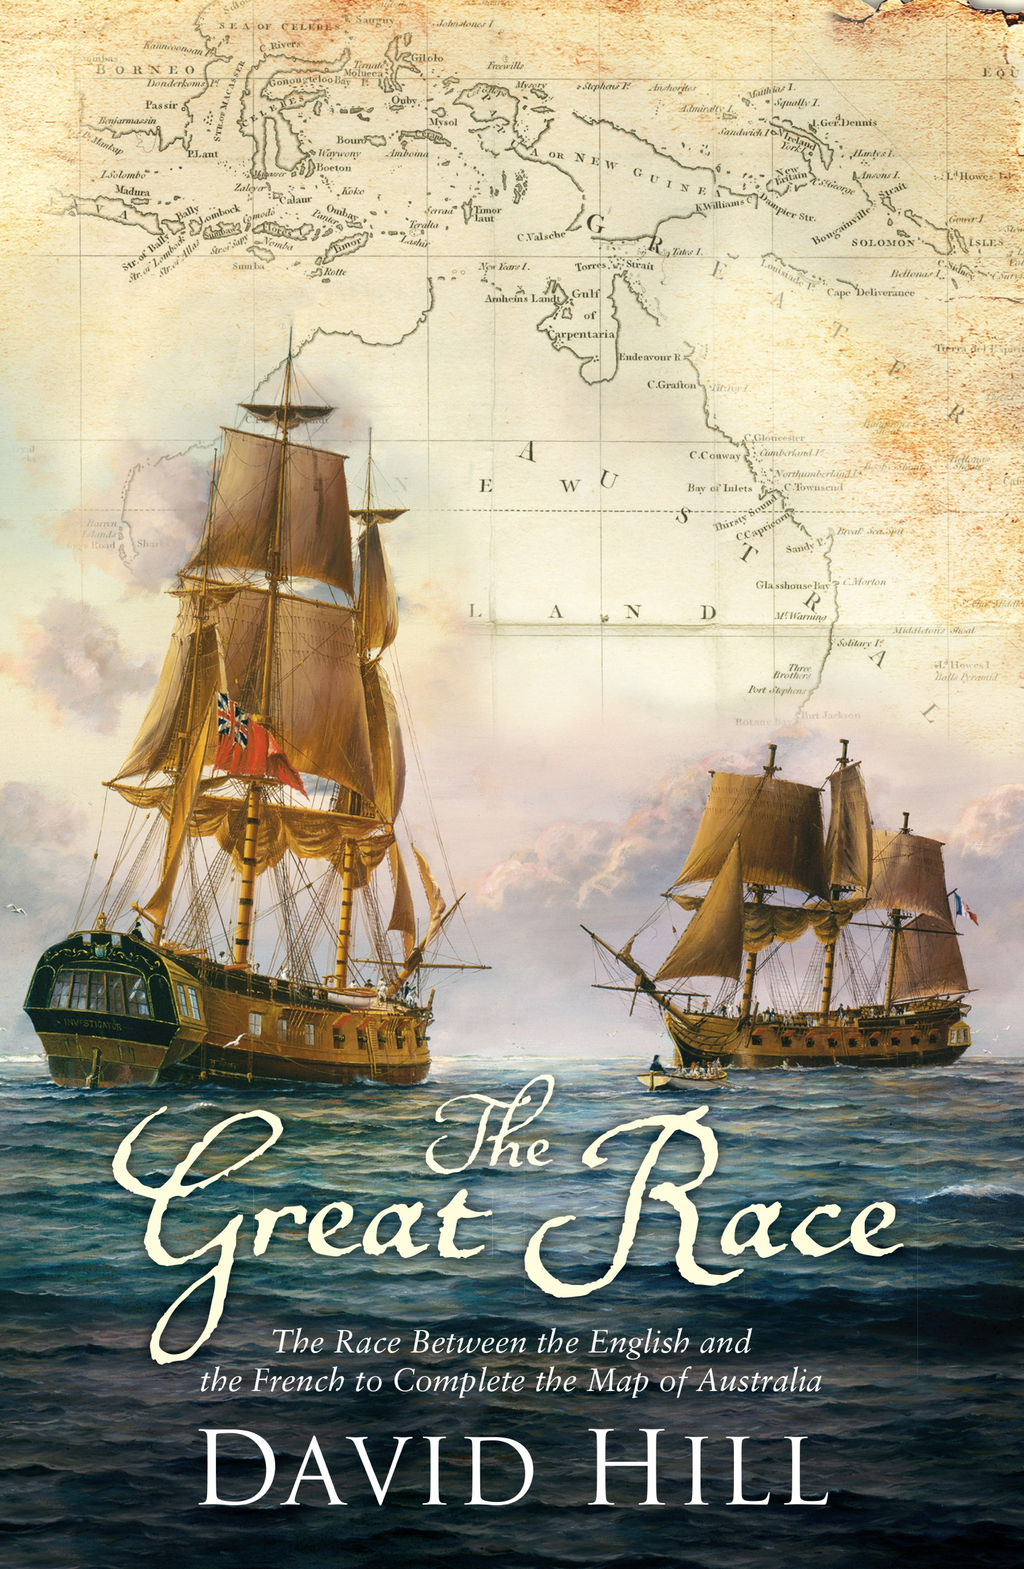 The Great Race The Race Between the English and the French to Complete the Map of Australia